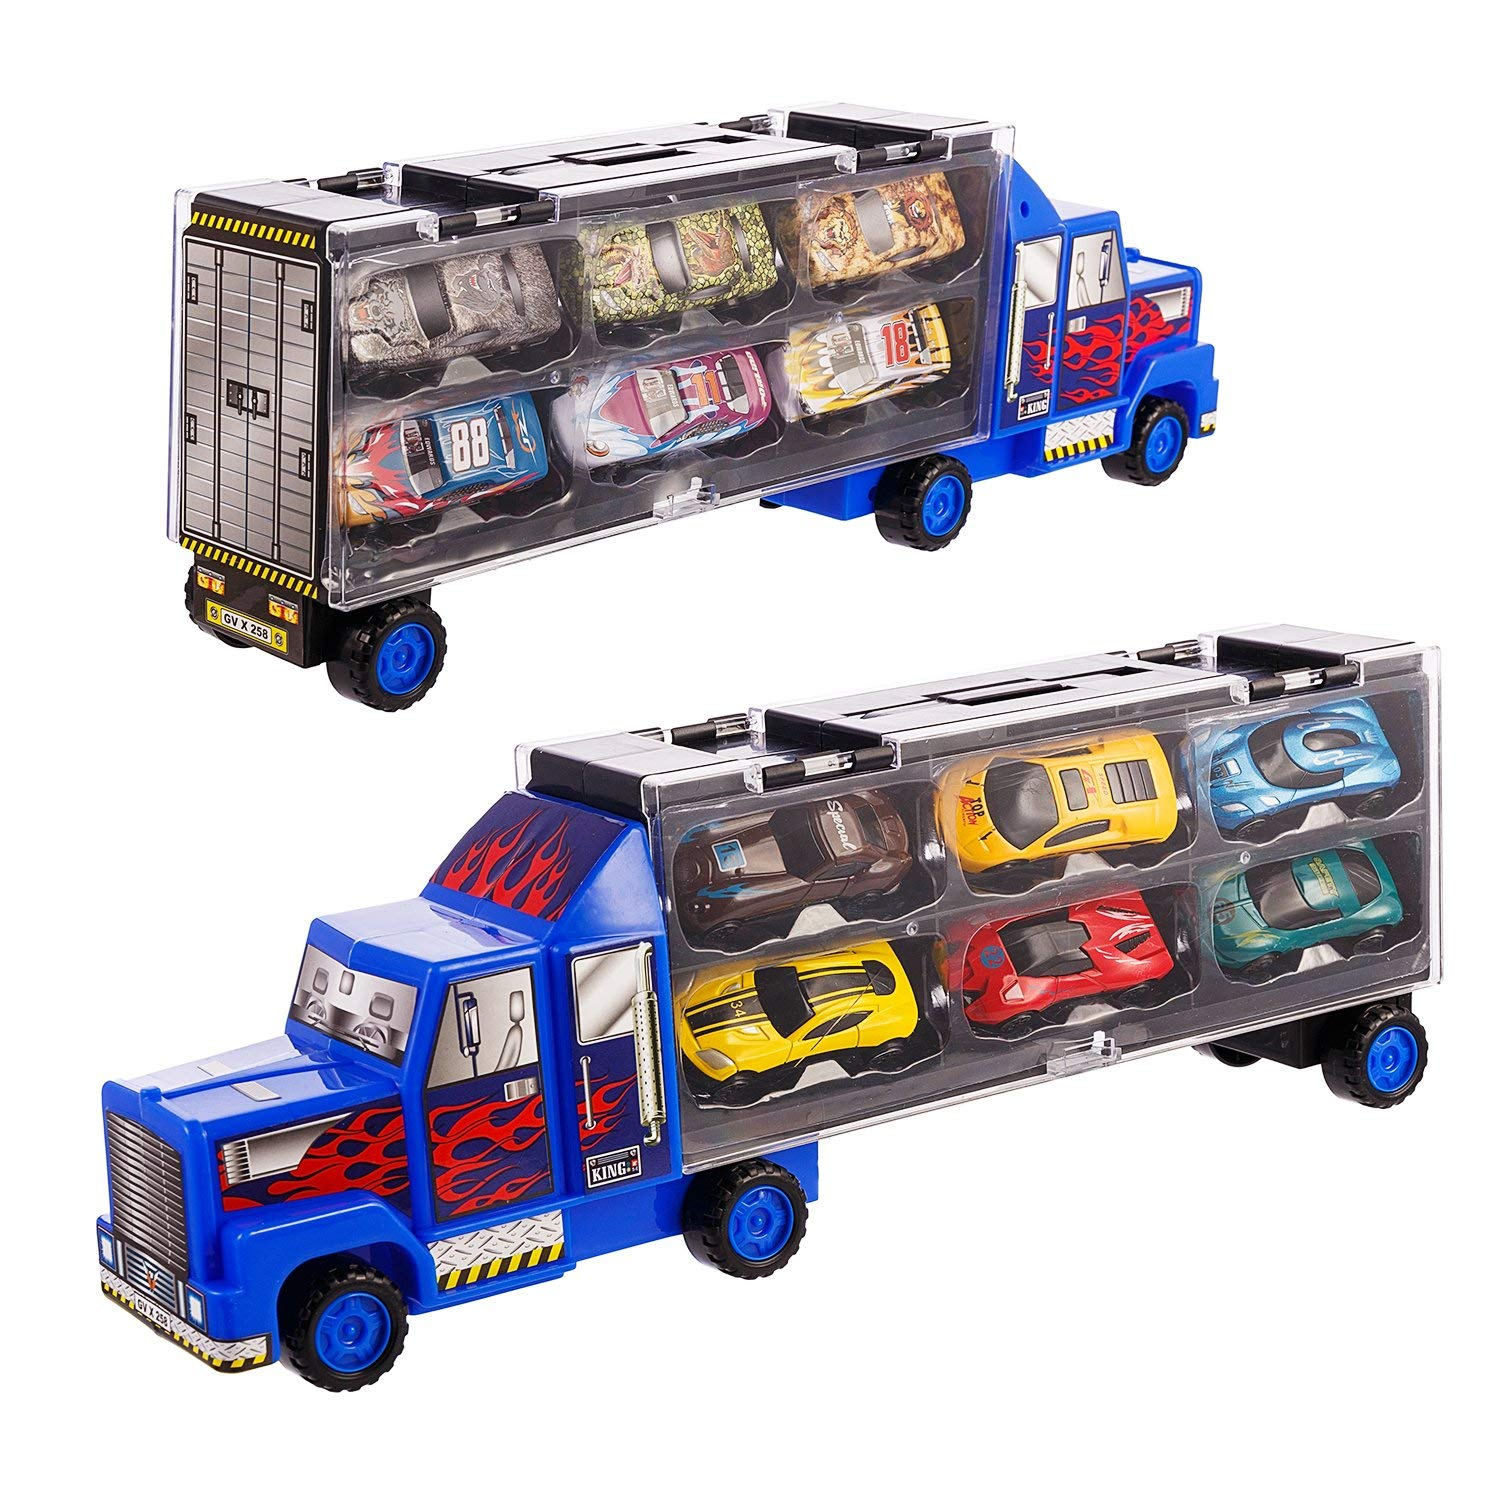 adc599aa89f6f Get Quotations · Transport Car Carrier Truck diecast car Toy for Kids (Includes  6 Alloy Cars